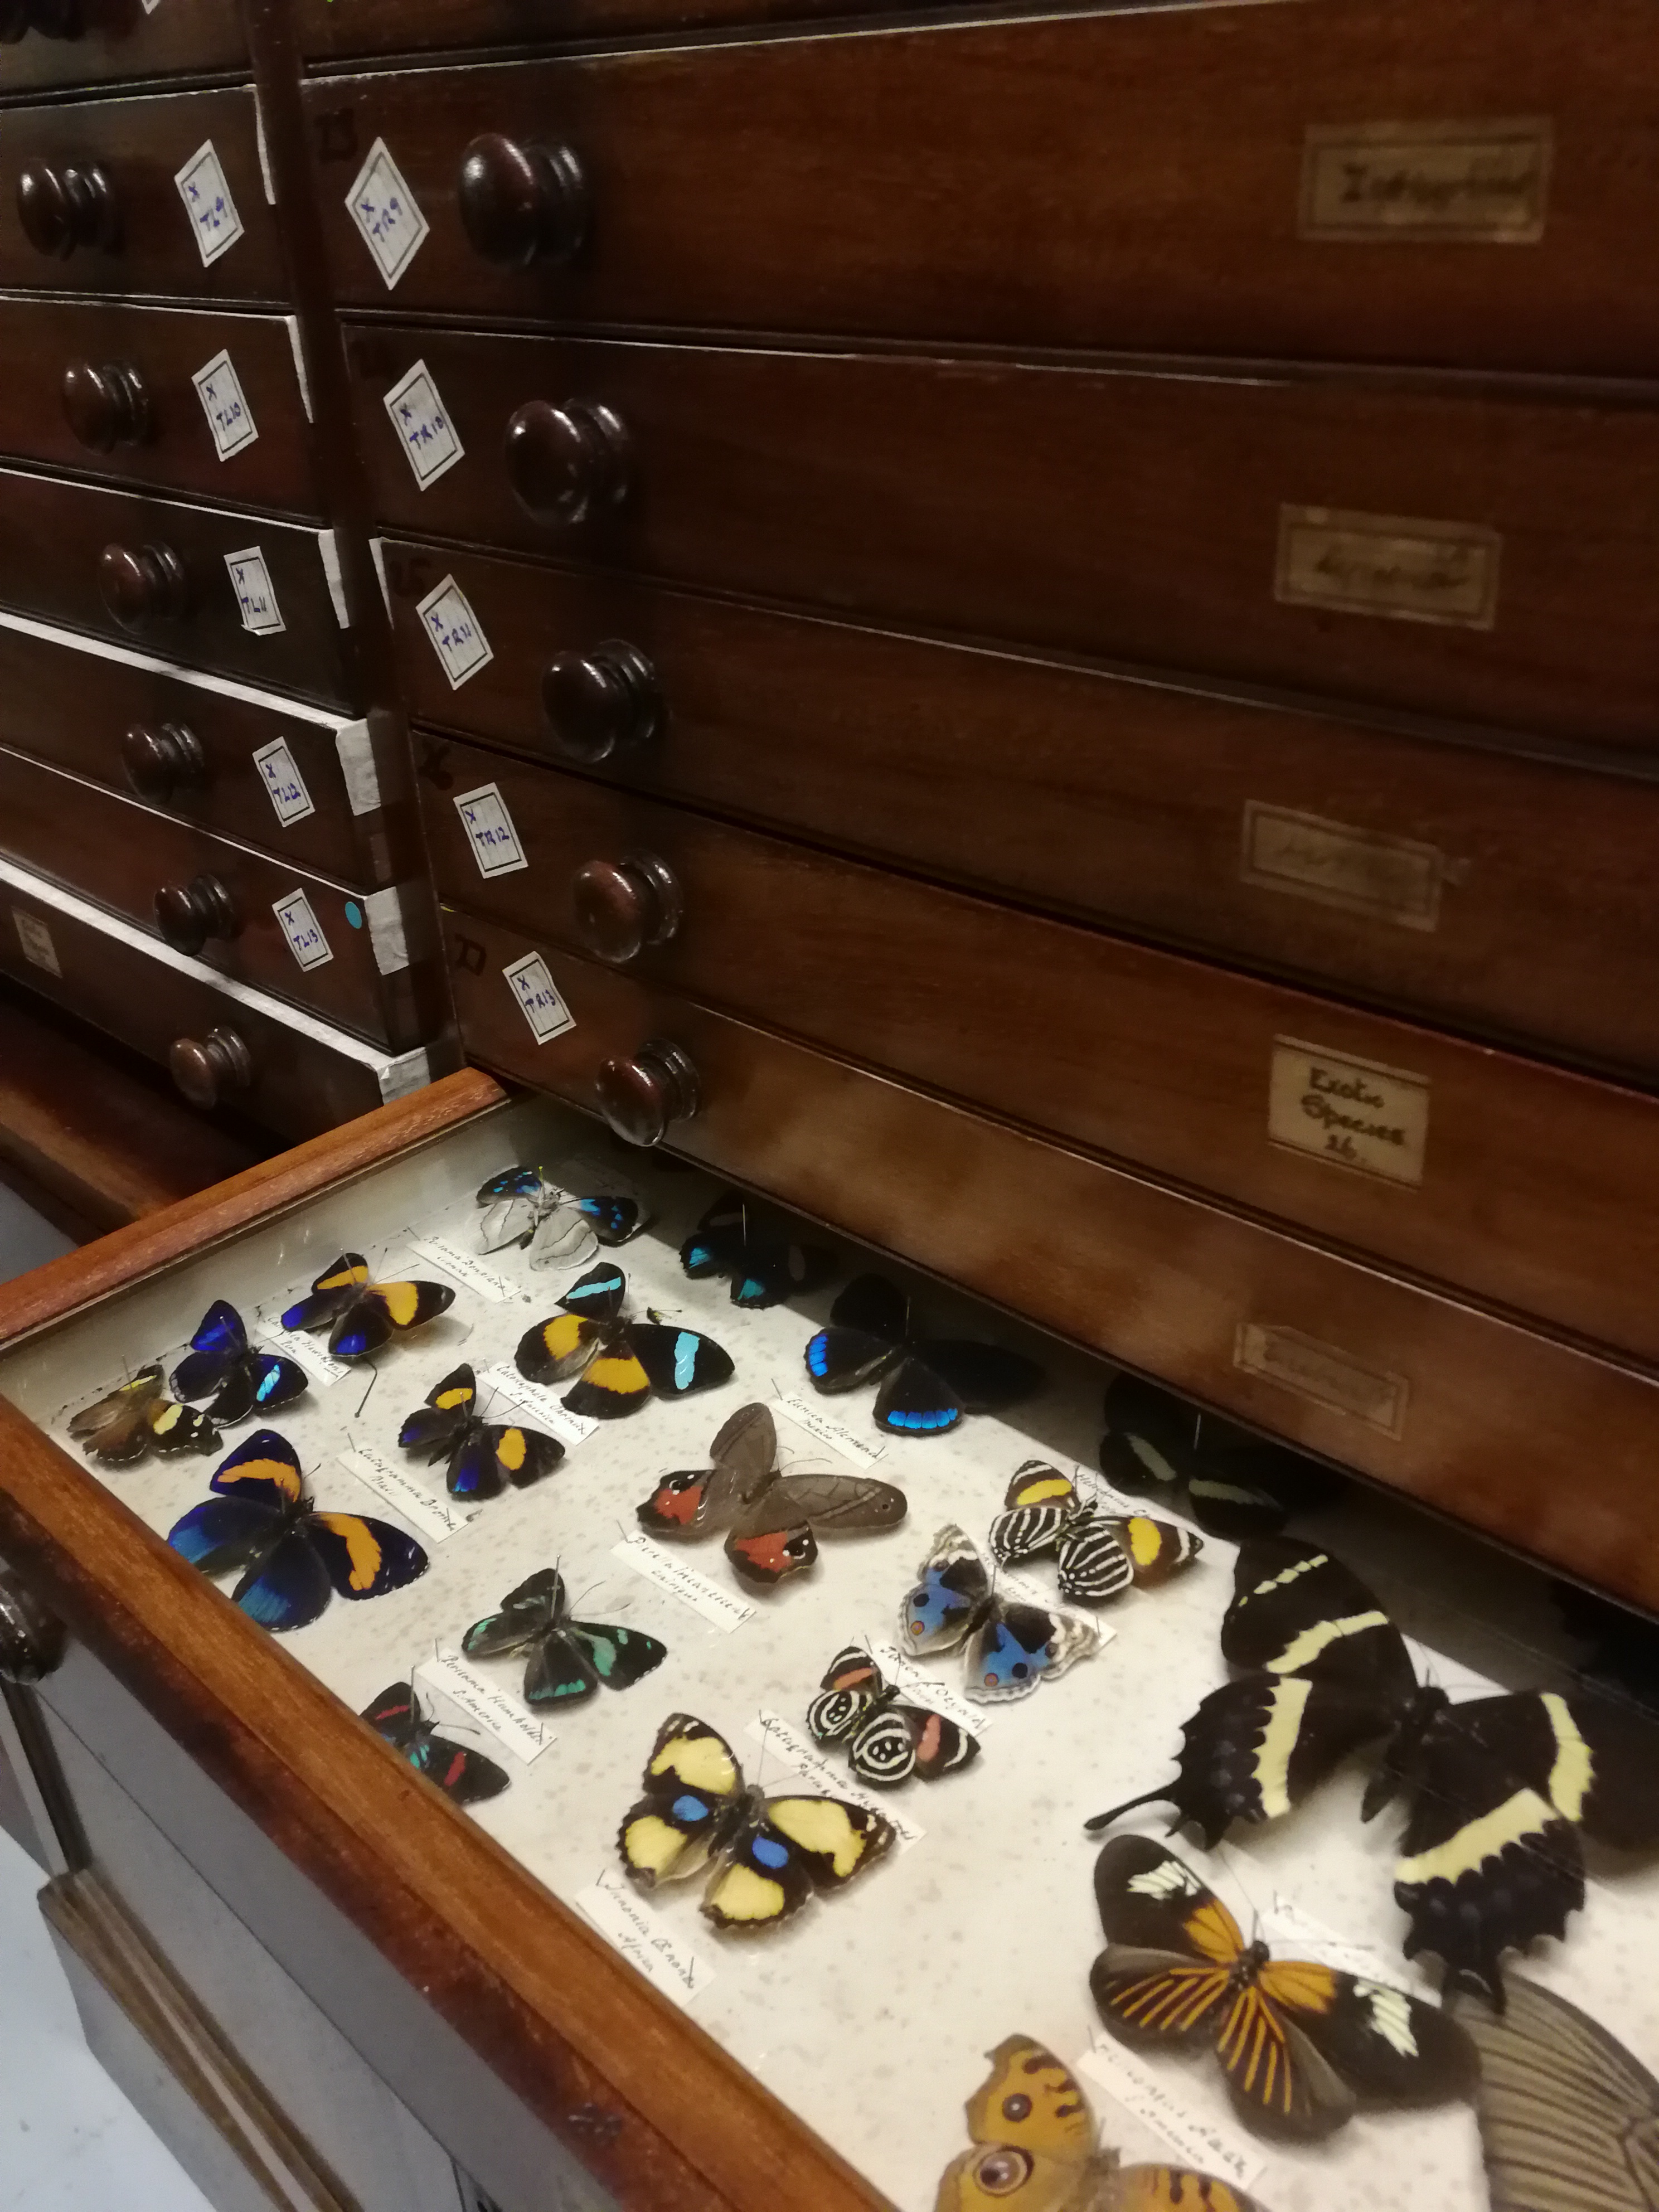 Colour photograph of a set of drawers, one of which is open showing the butterflies inside